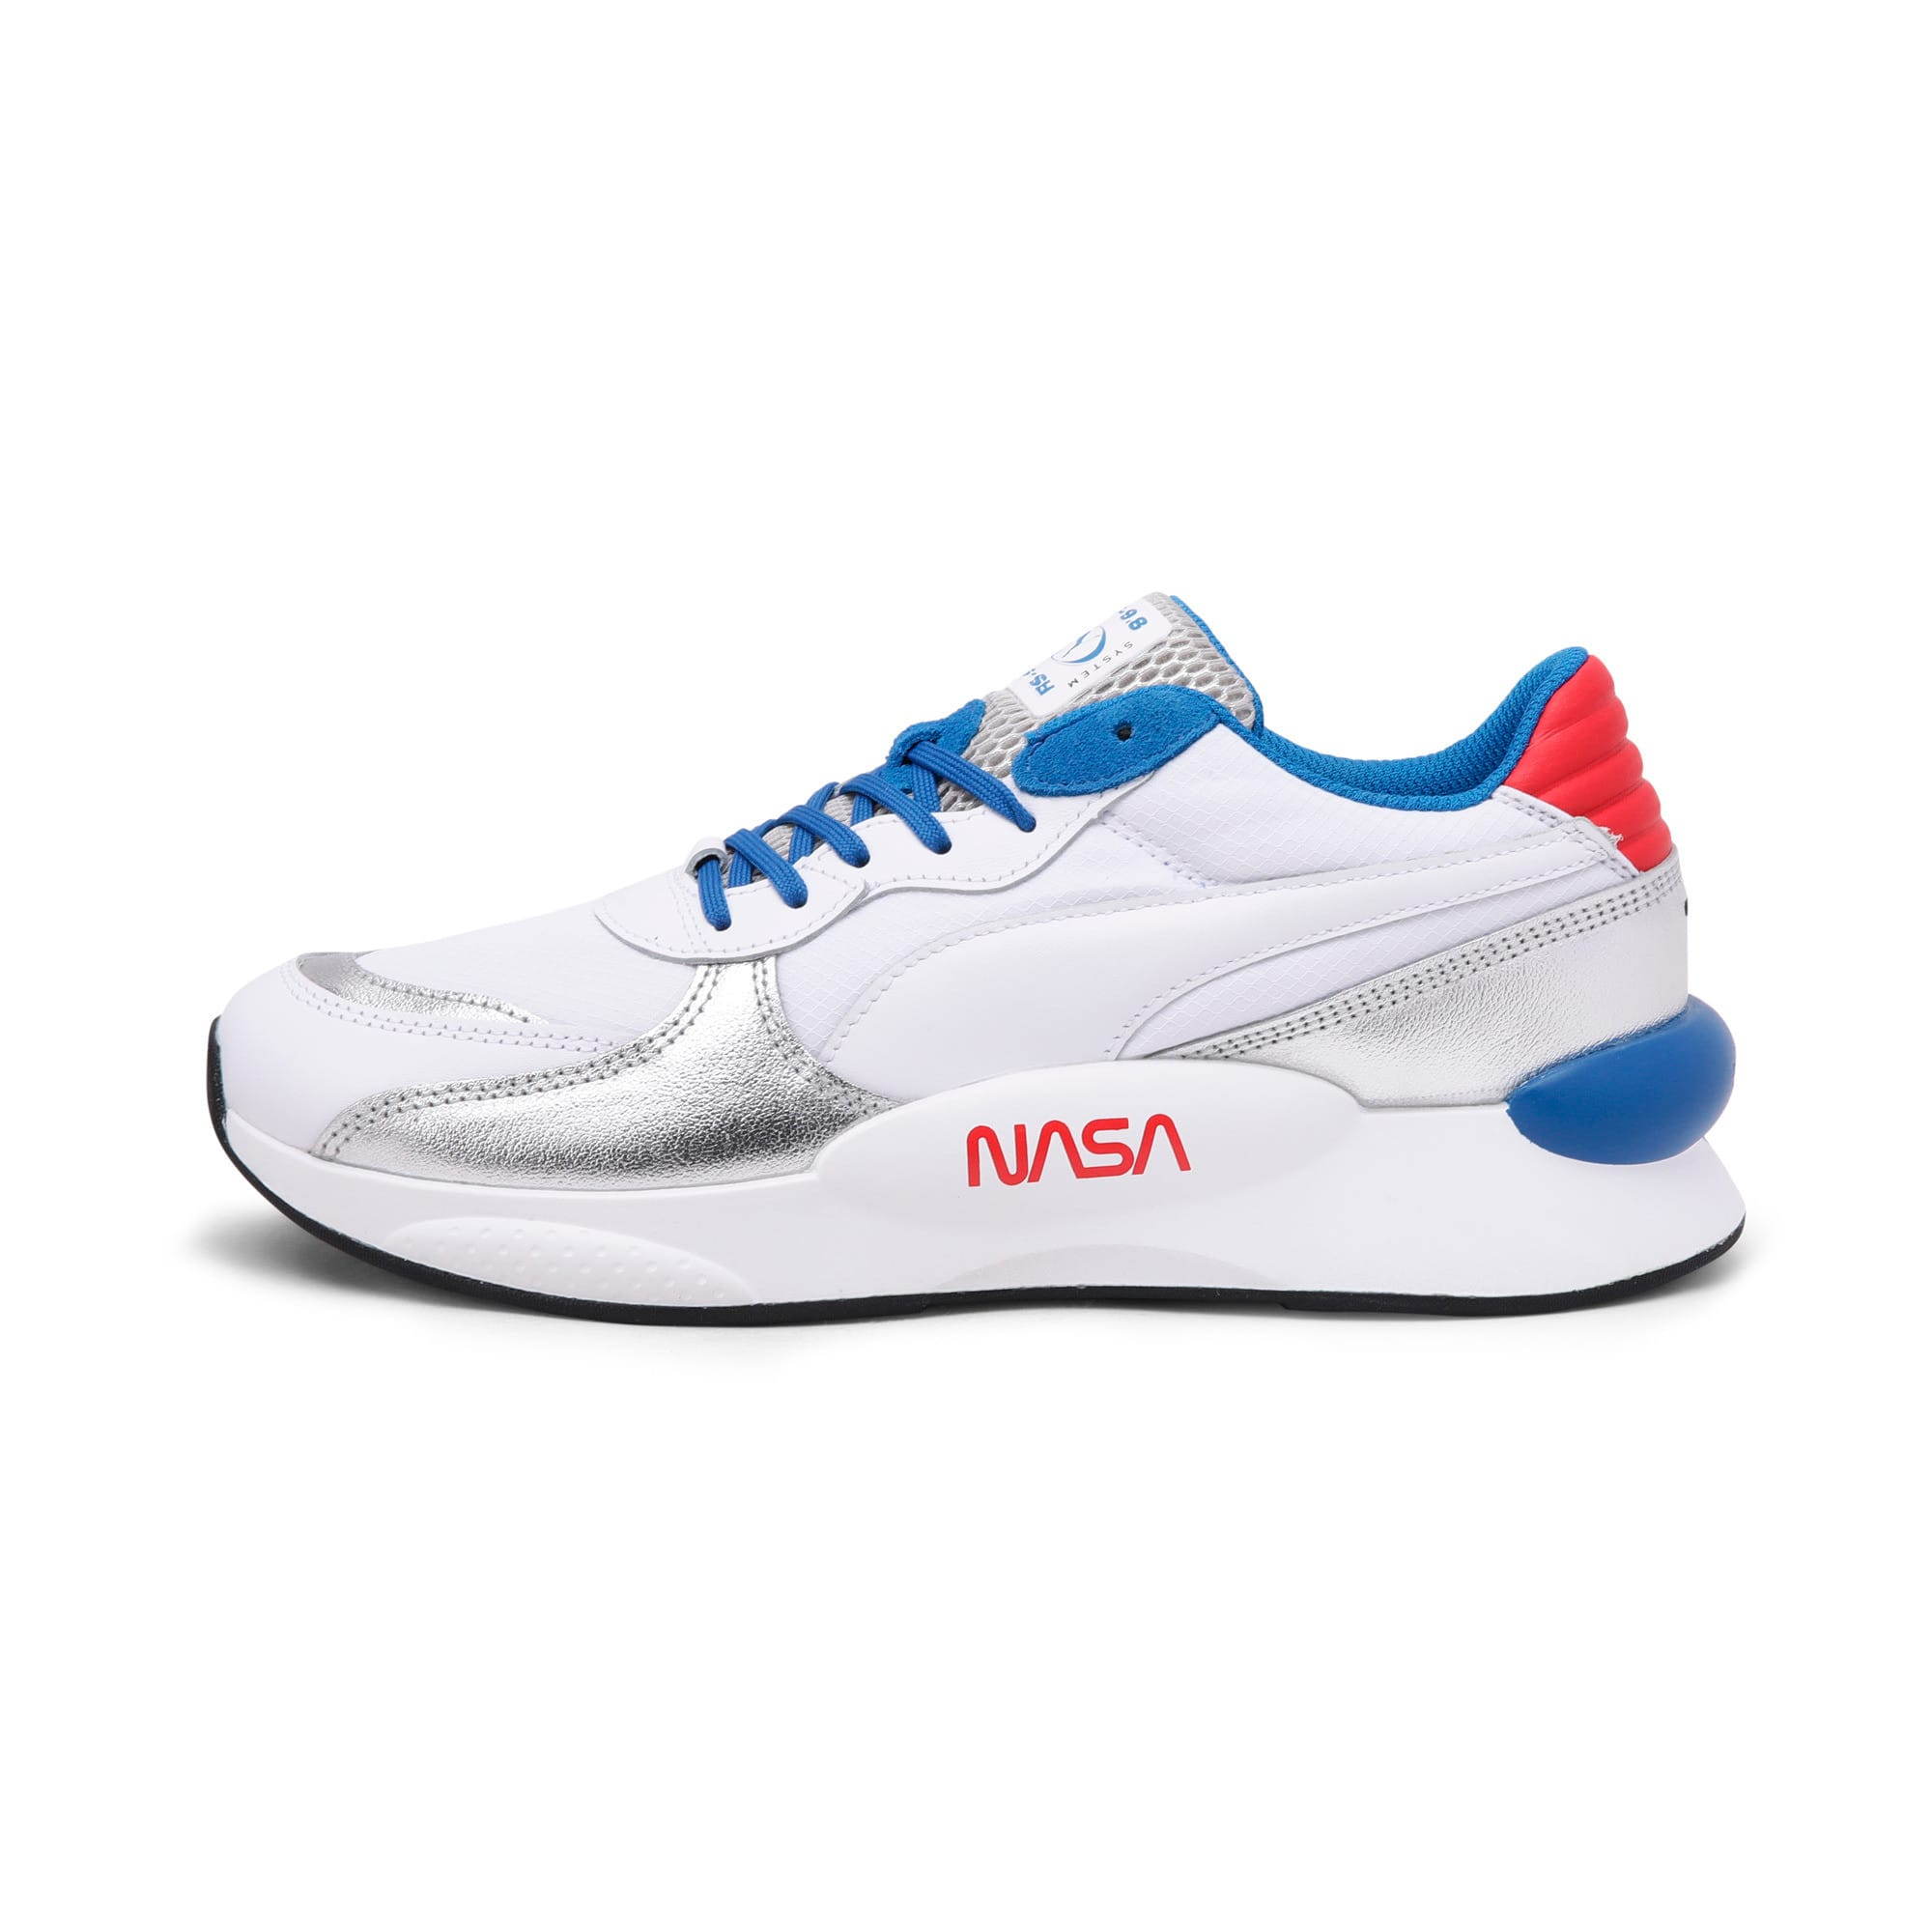 Thumbnail 1 of RS 9.8 Space Explorer Trainers, Puma White-Puma Silver, medium-IND